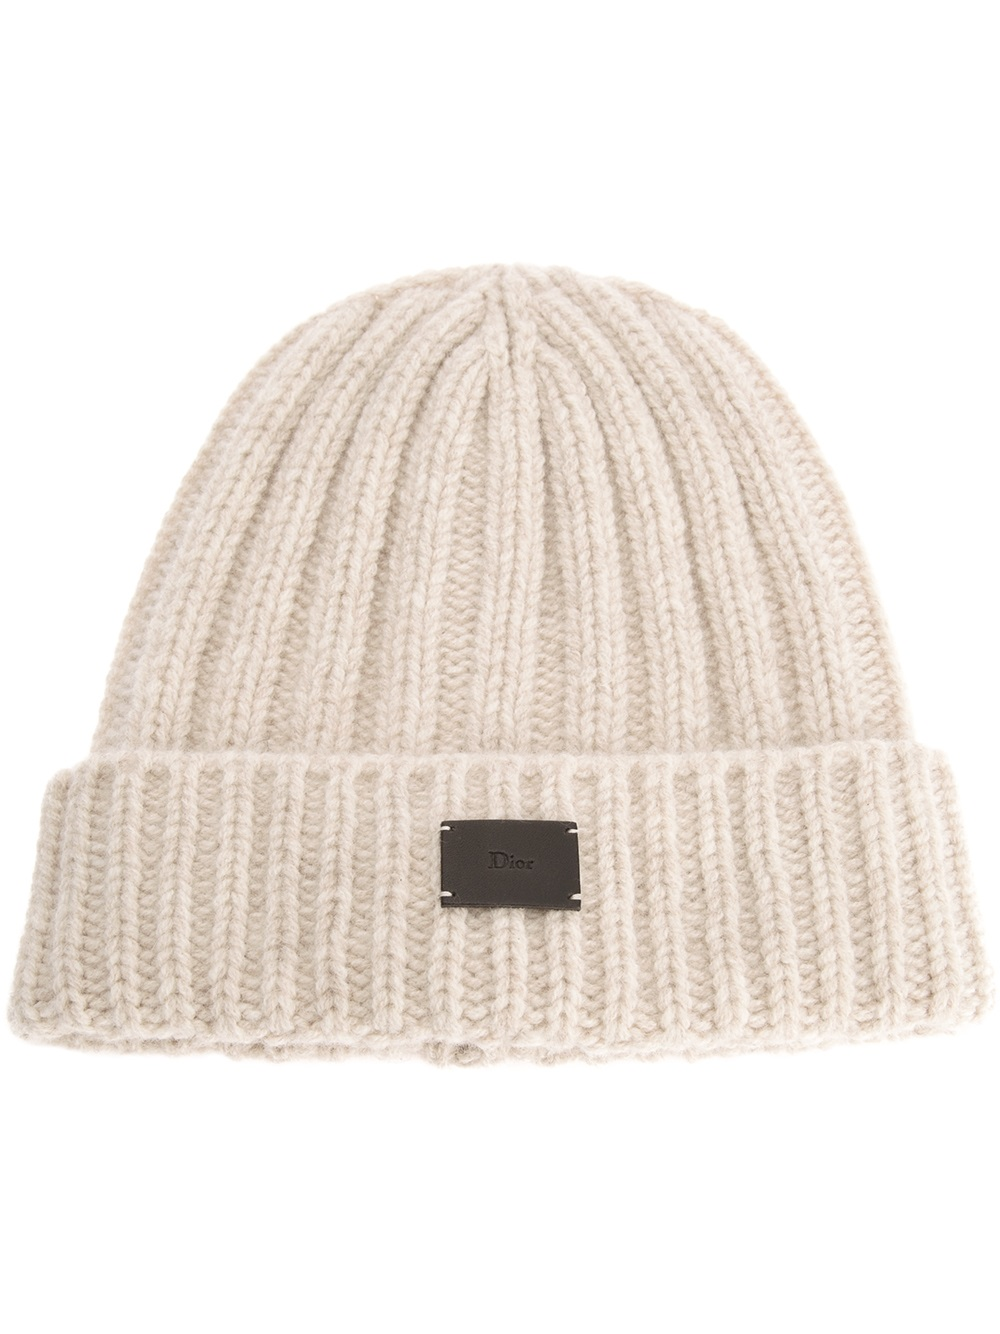 Lyst - Dior Homme Ribbed Beanie Hat in Natural for Men 81f05965600